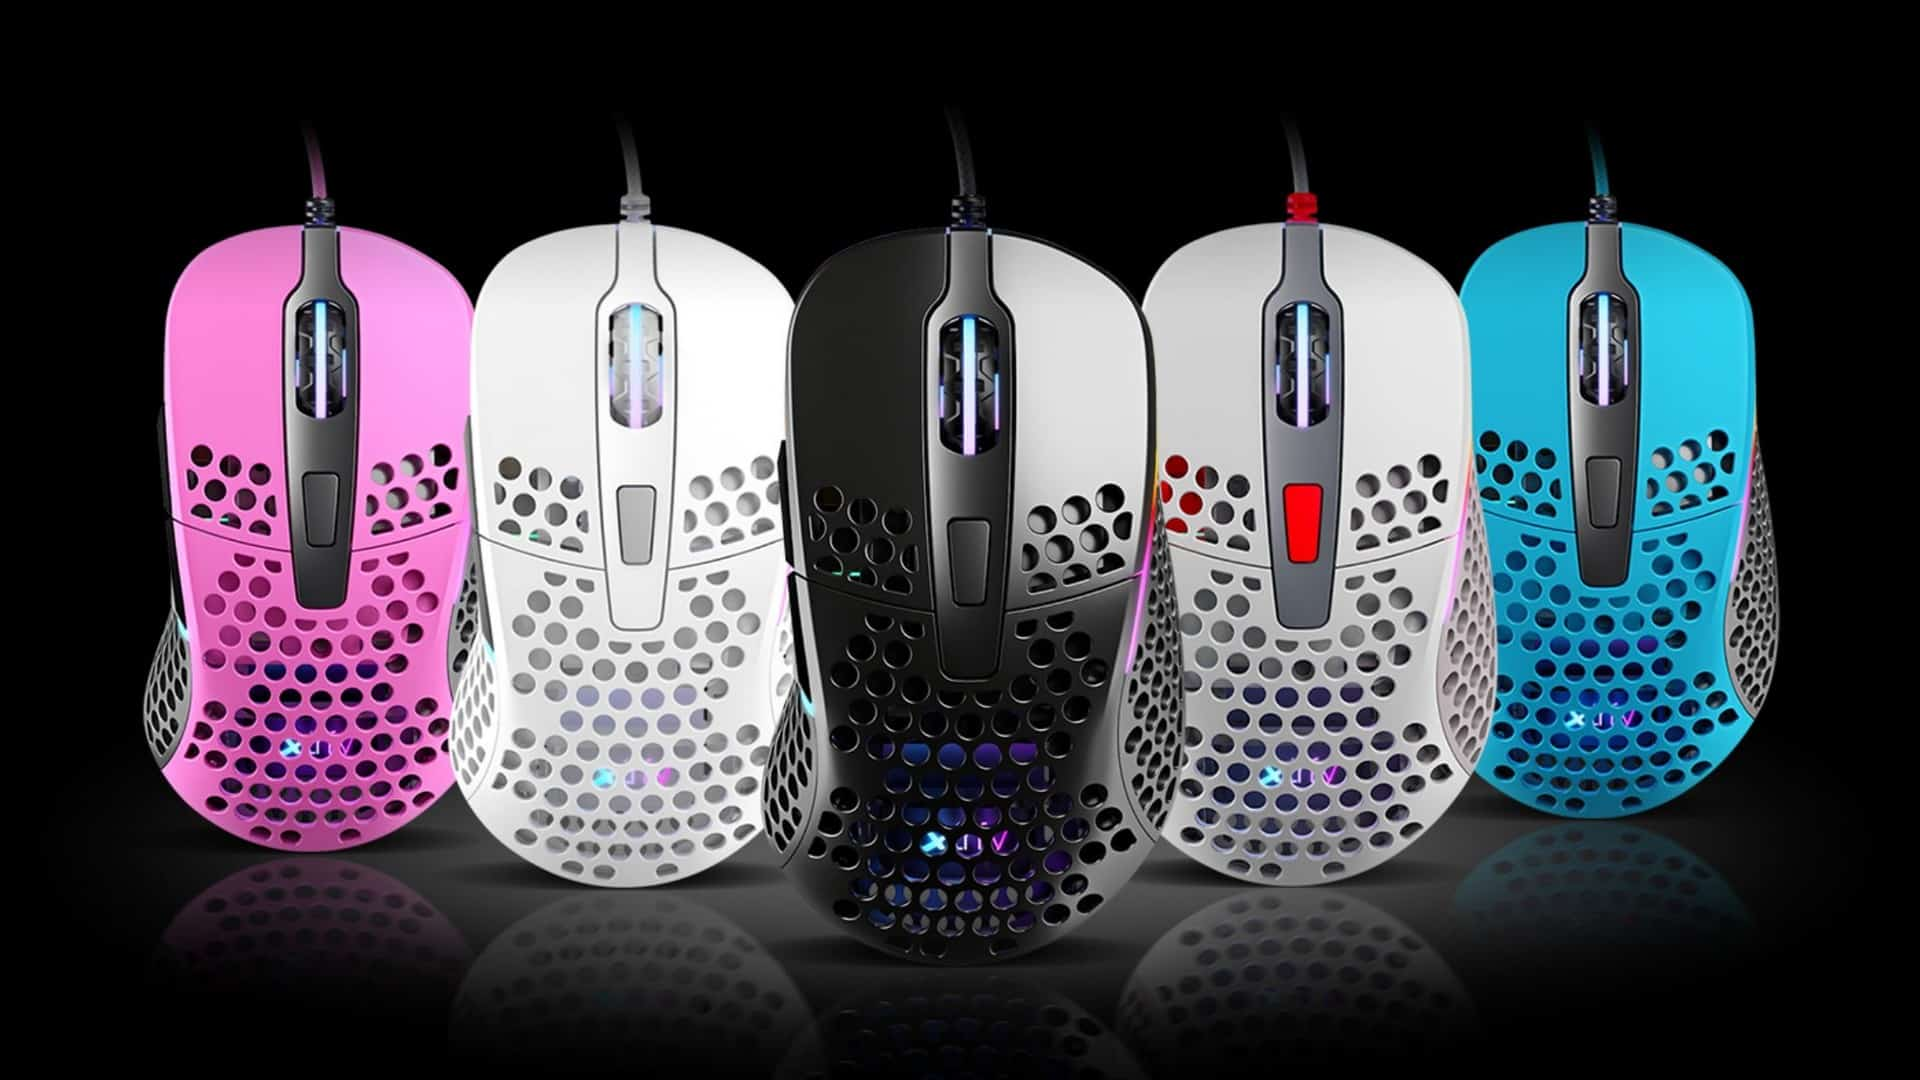 XTRFY Presents Project 4 – The Next Level Of Lightweight Gaming Mice